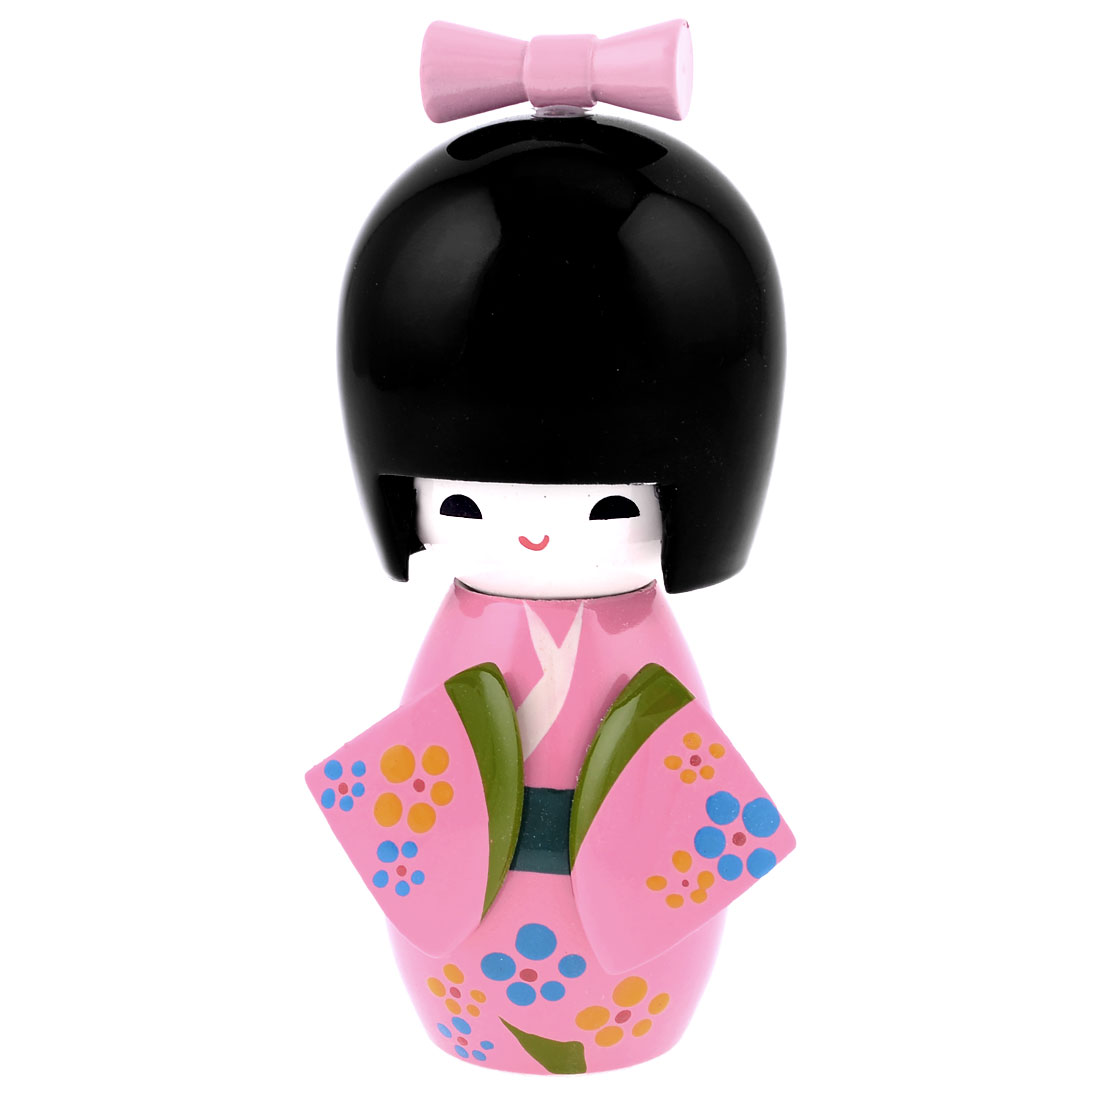 Office Desk Decorctive Wooden Japanese Kimono Kokeshi Doll Toy Pink